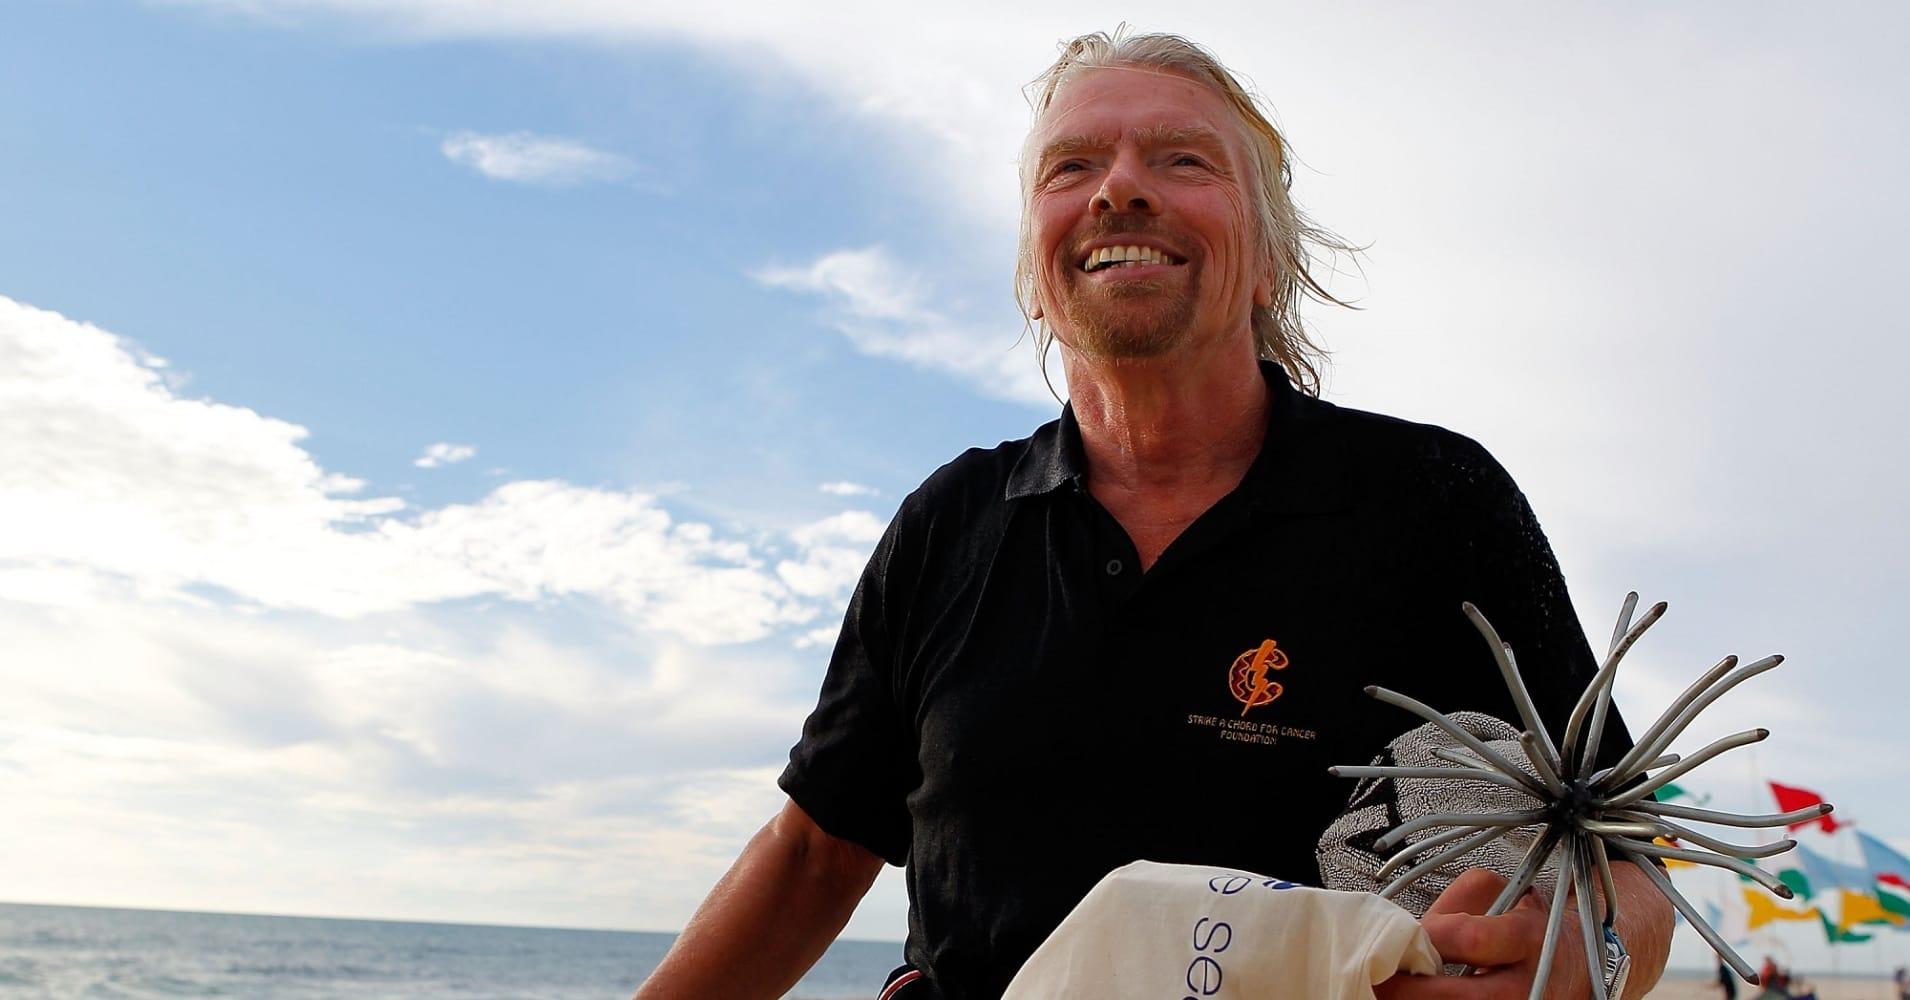 Sir Richard Branson walks up Cottesloe Beach after arriving by kite surfer.